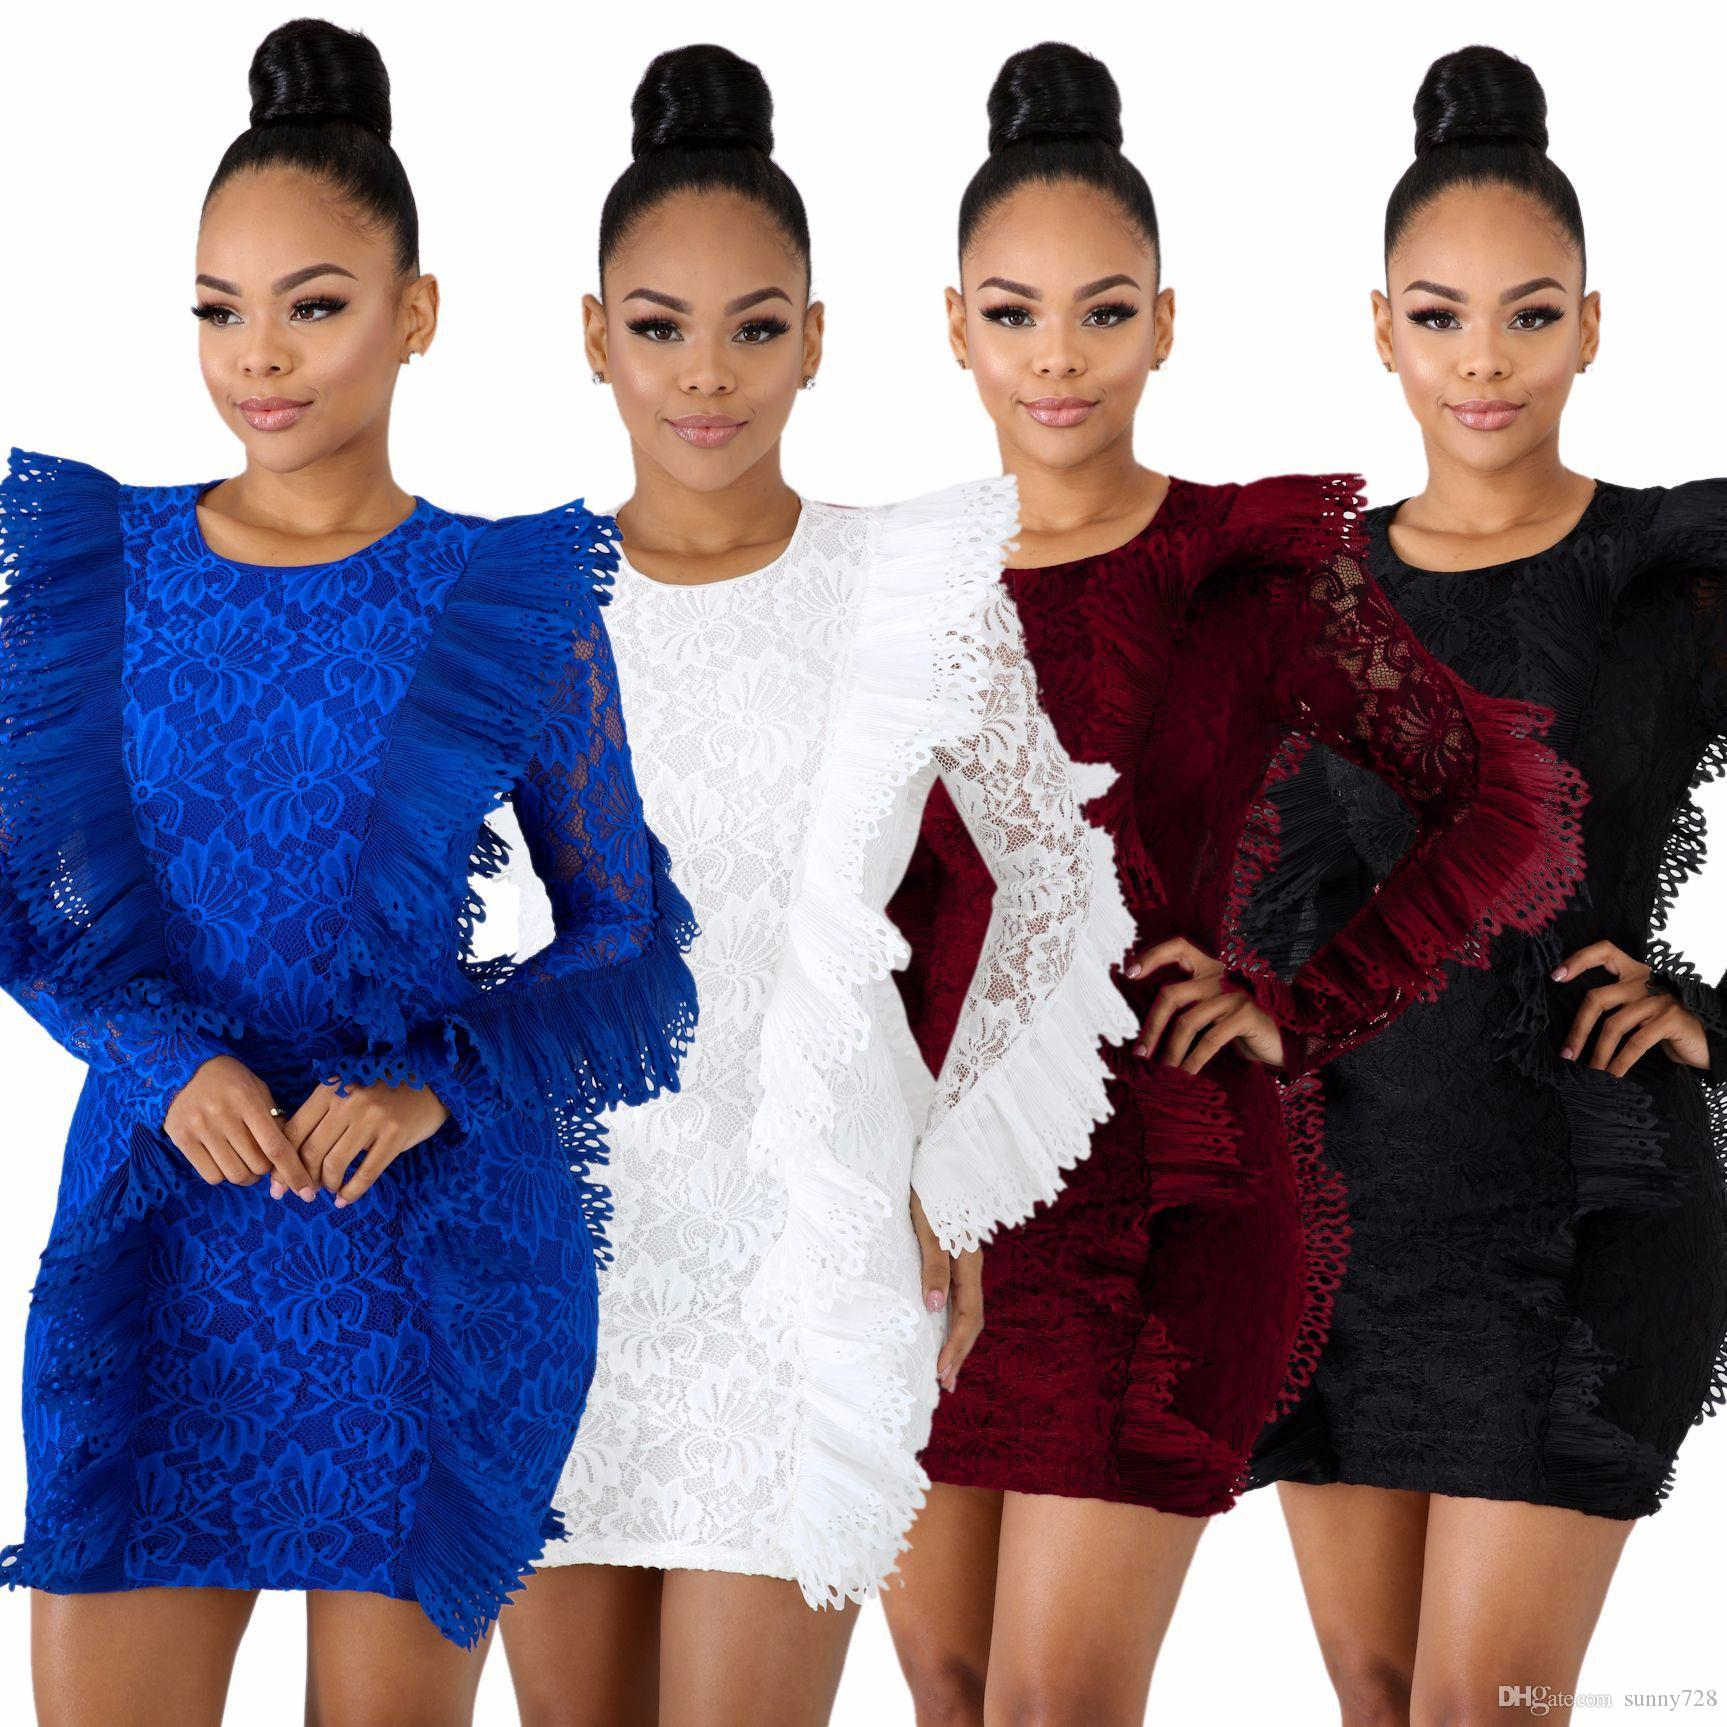 2019 Newest Lace Ruffles Elegant Party Dresses Long Sleeves Pleat Zippe Back Short Bodycon Dress Real Pictures High Quality Fabric 4 Colors